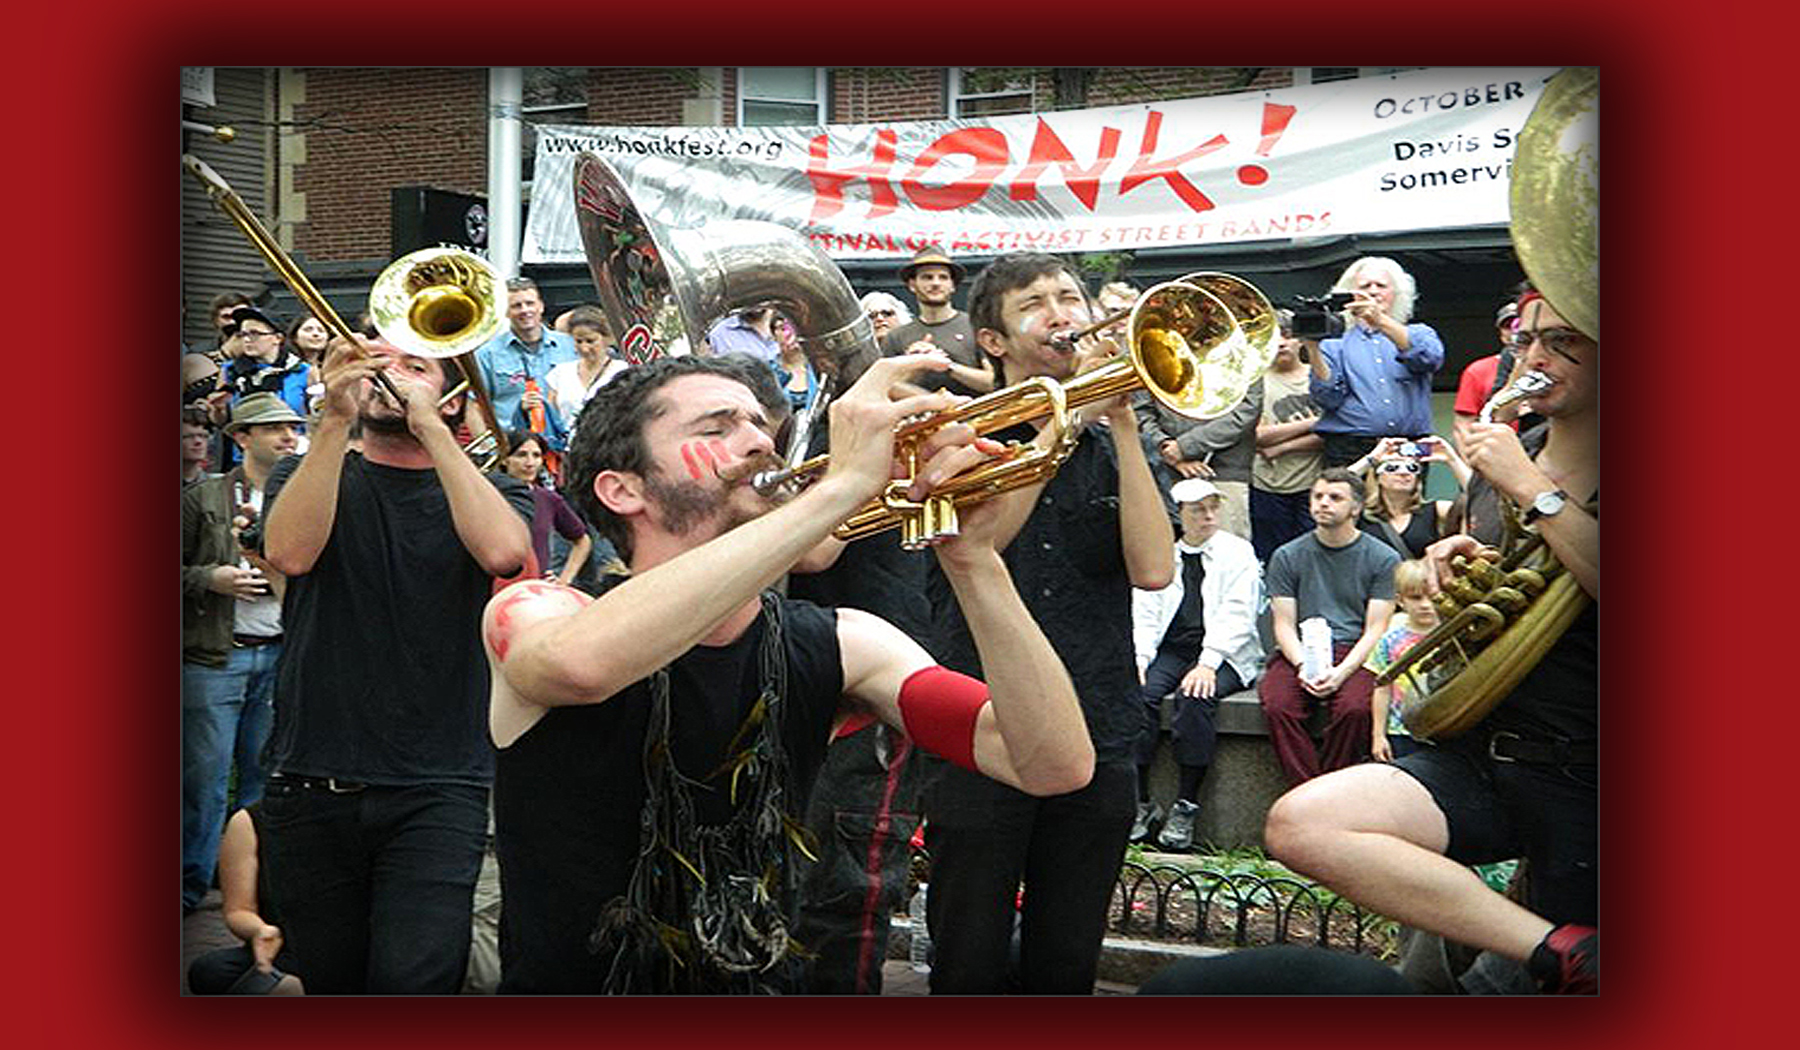 Street-wide Symphony of Sound: the Art of HONK!